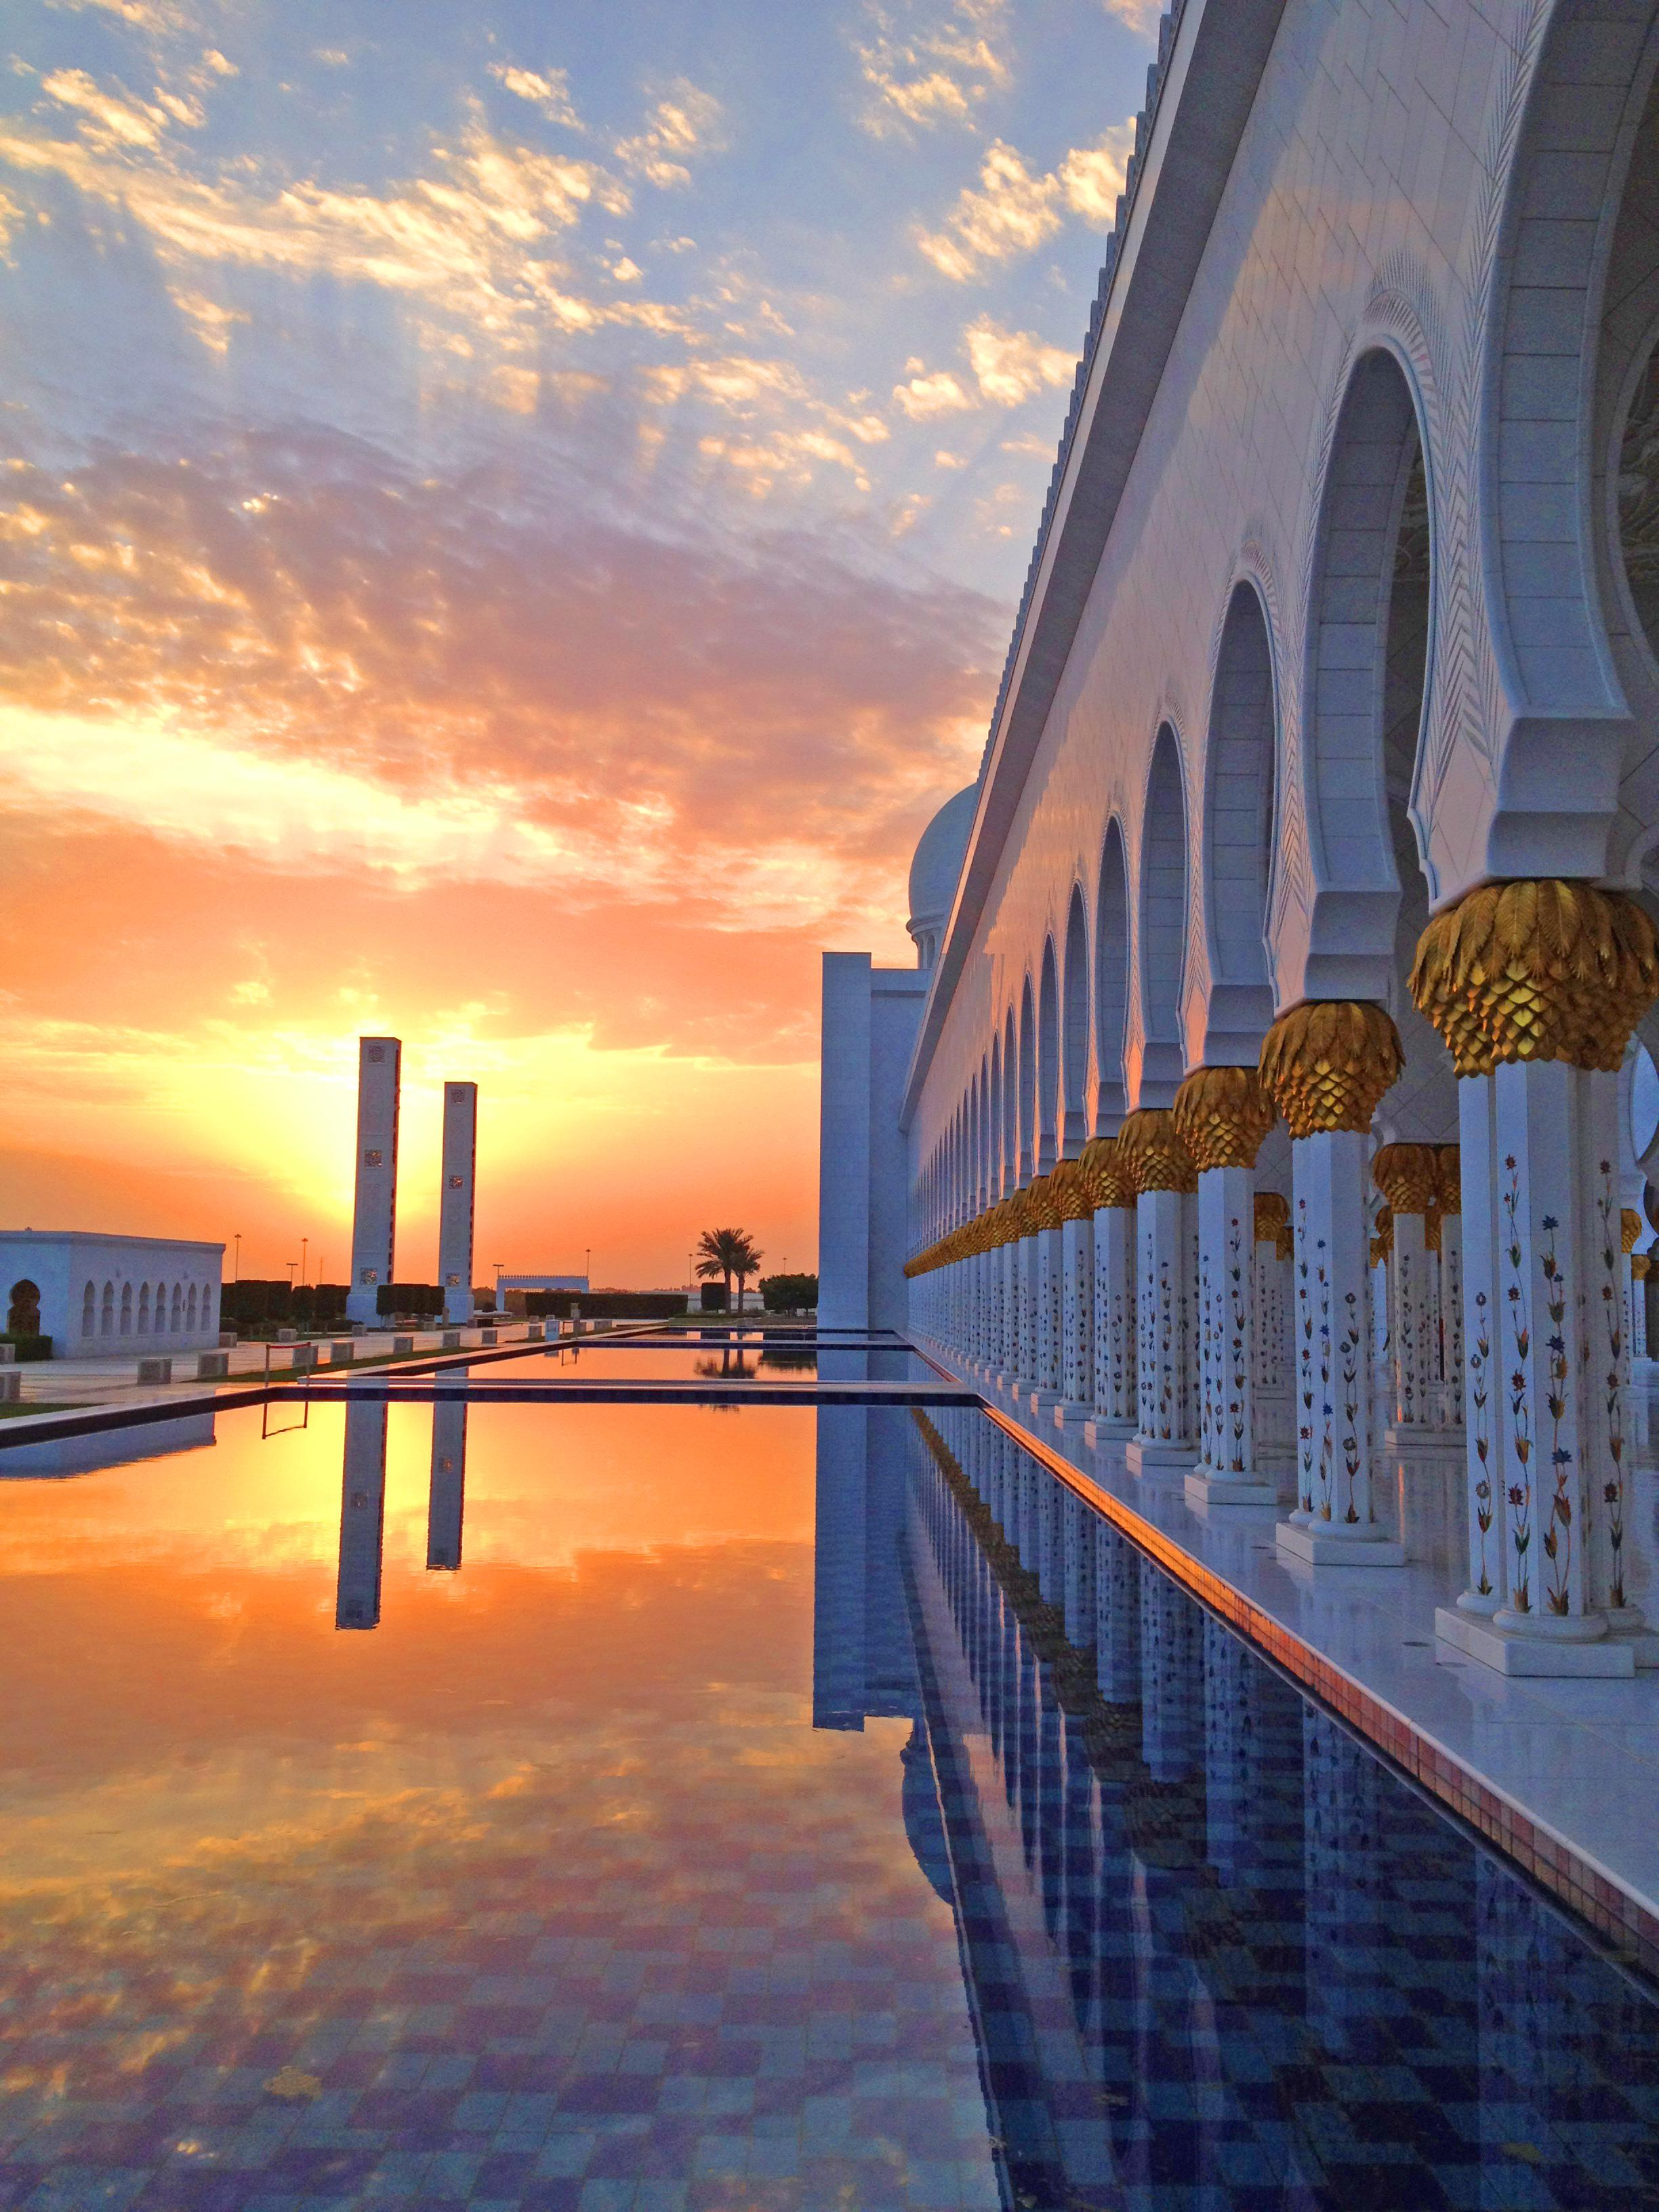 an account of moving to abu dhabi